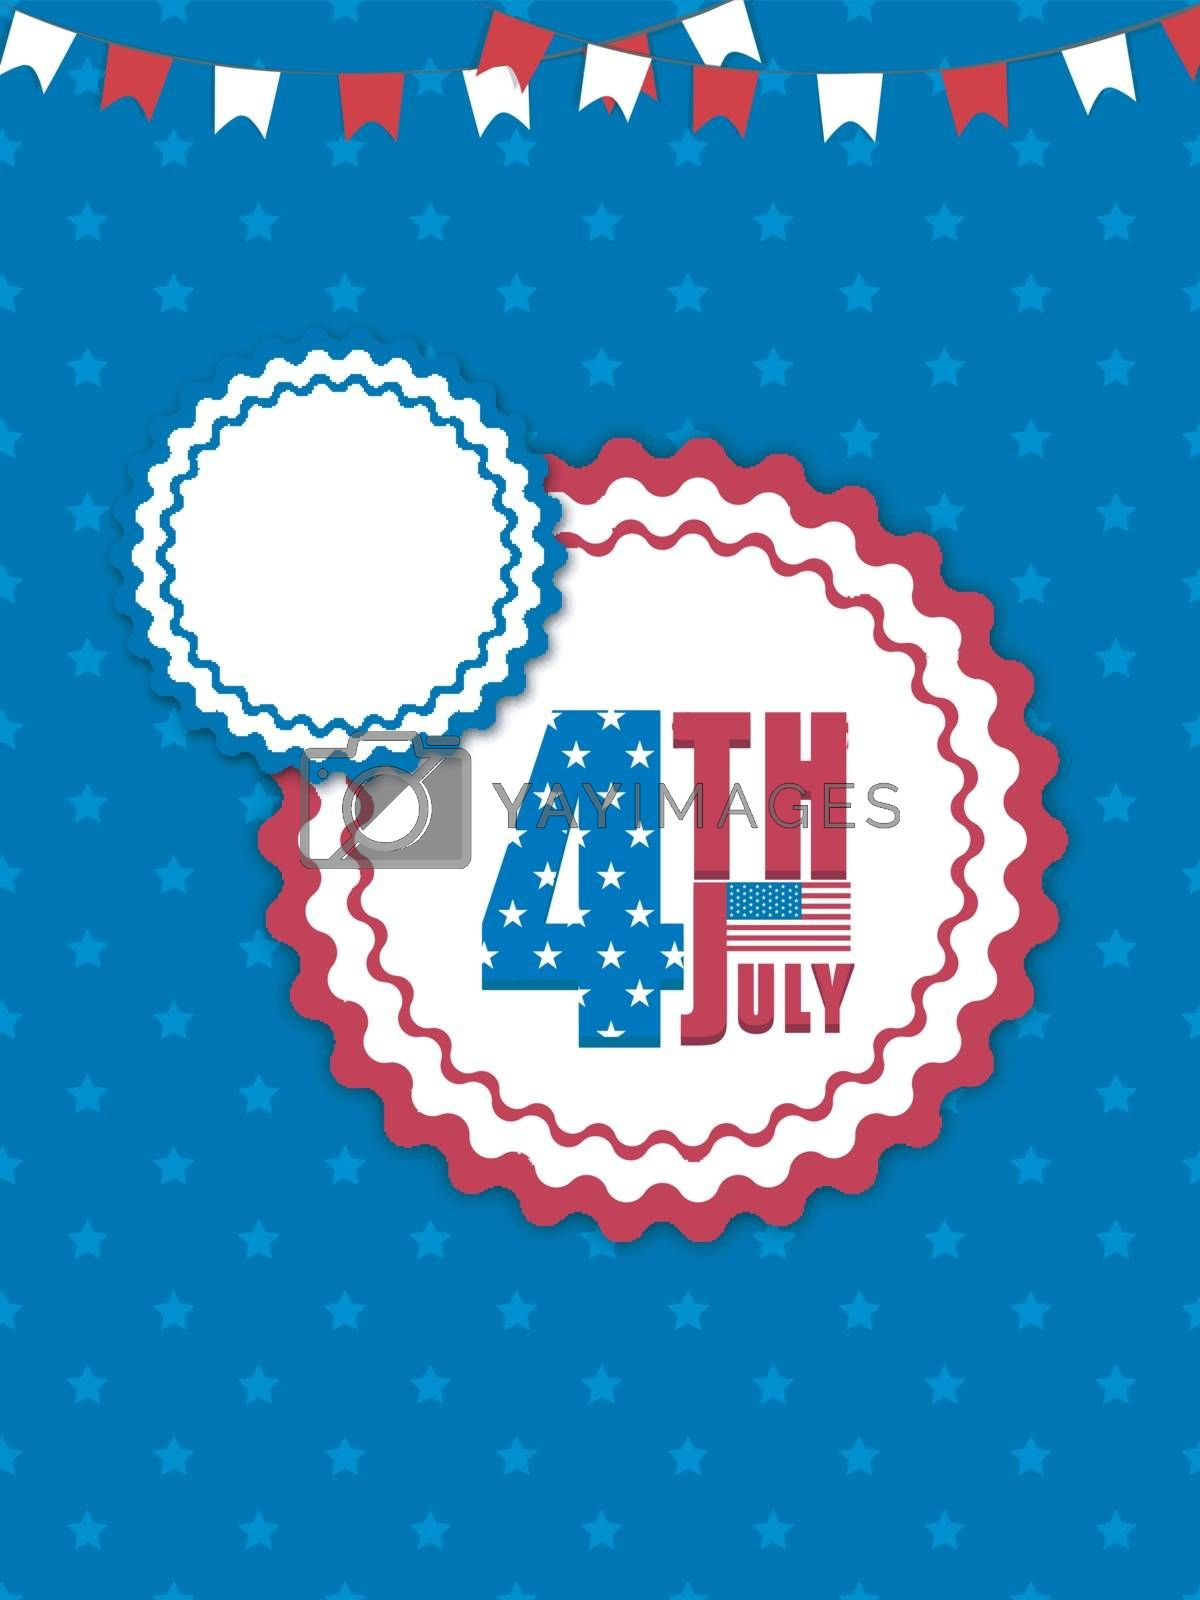 Creative Template, Banner or Flyer design for 4th of July, American Independence Day celebration.